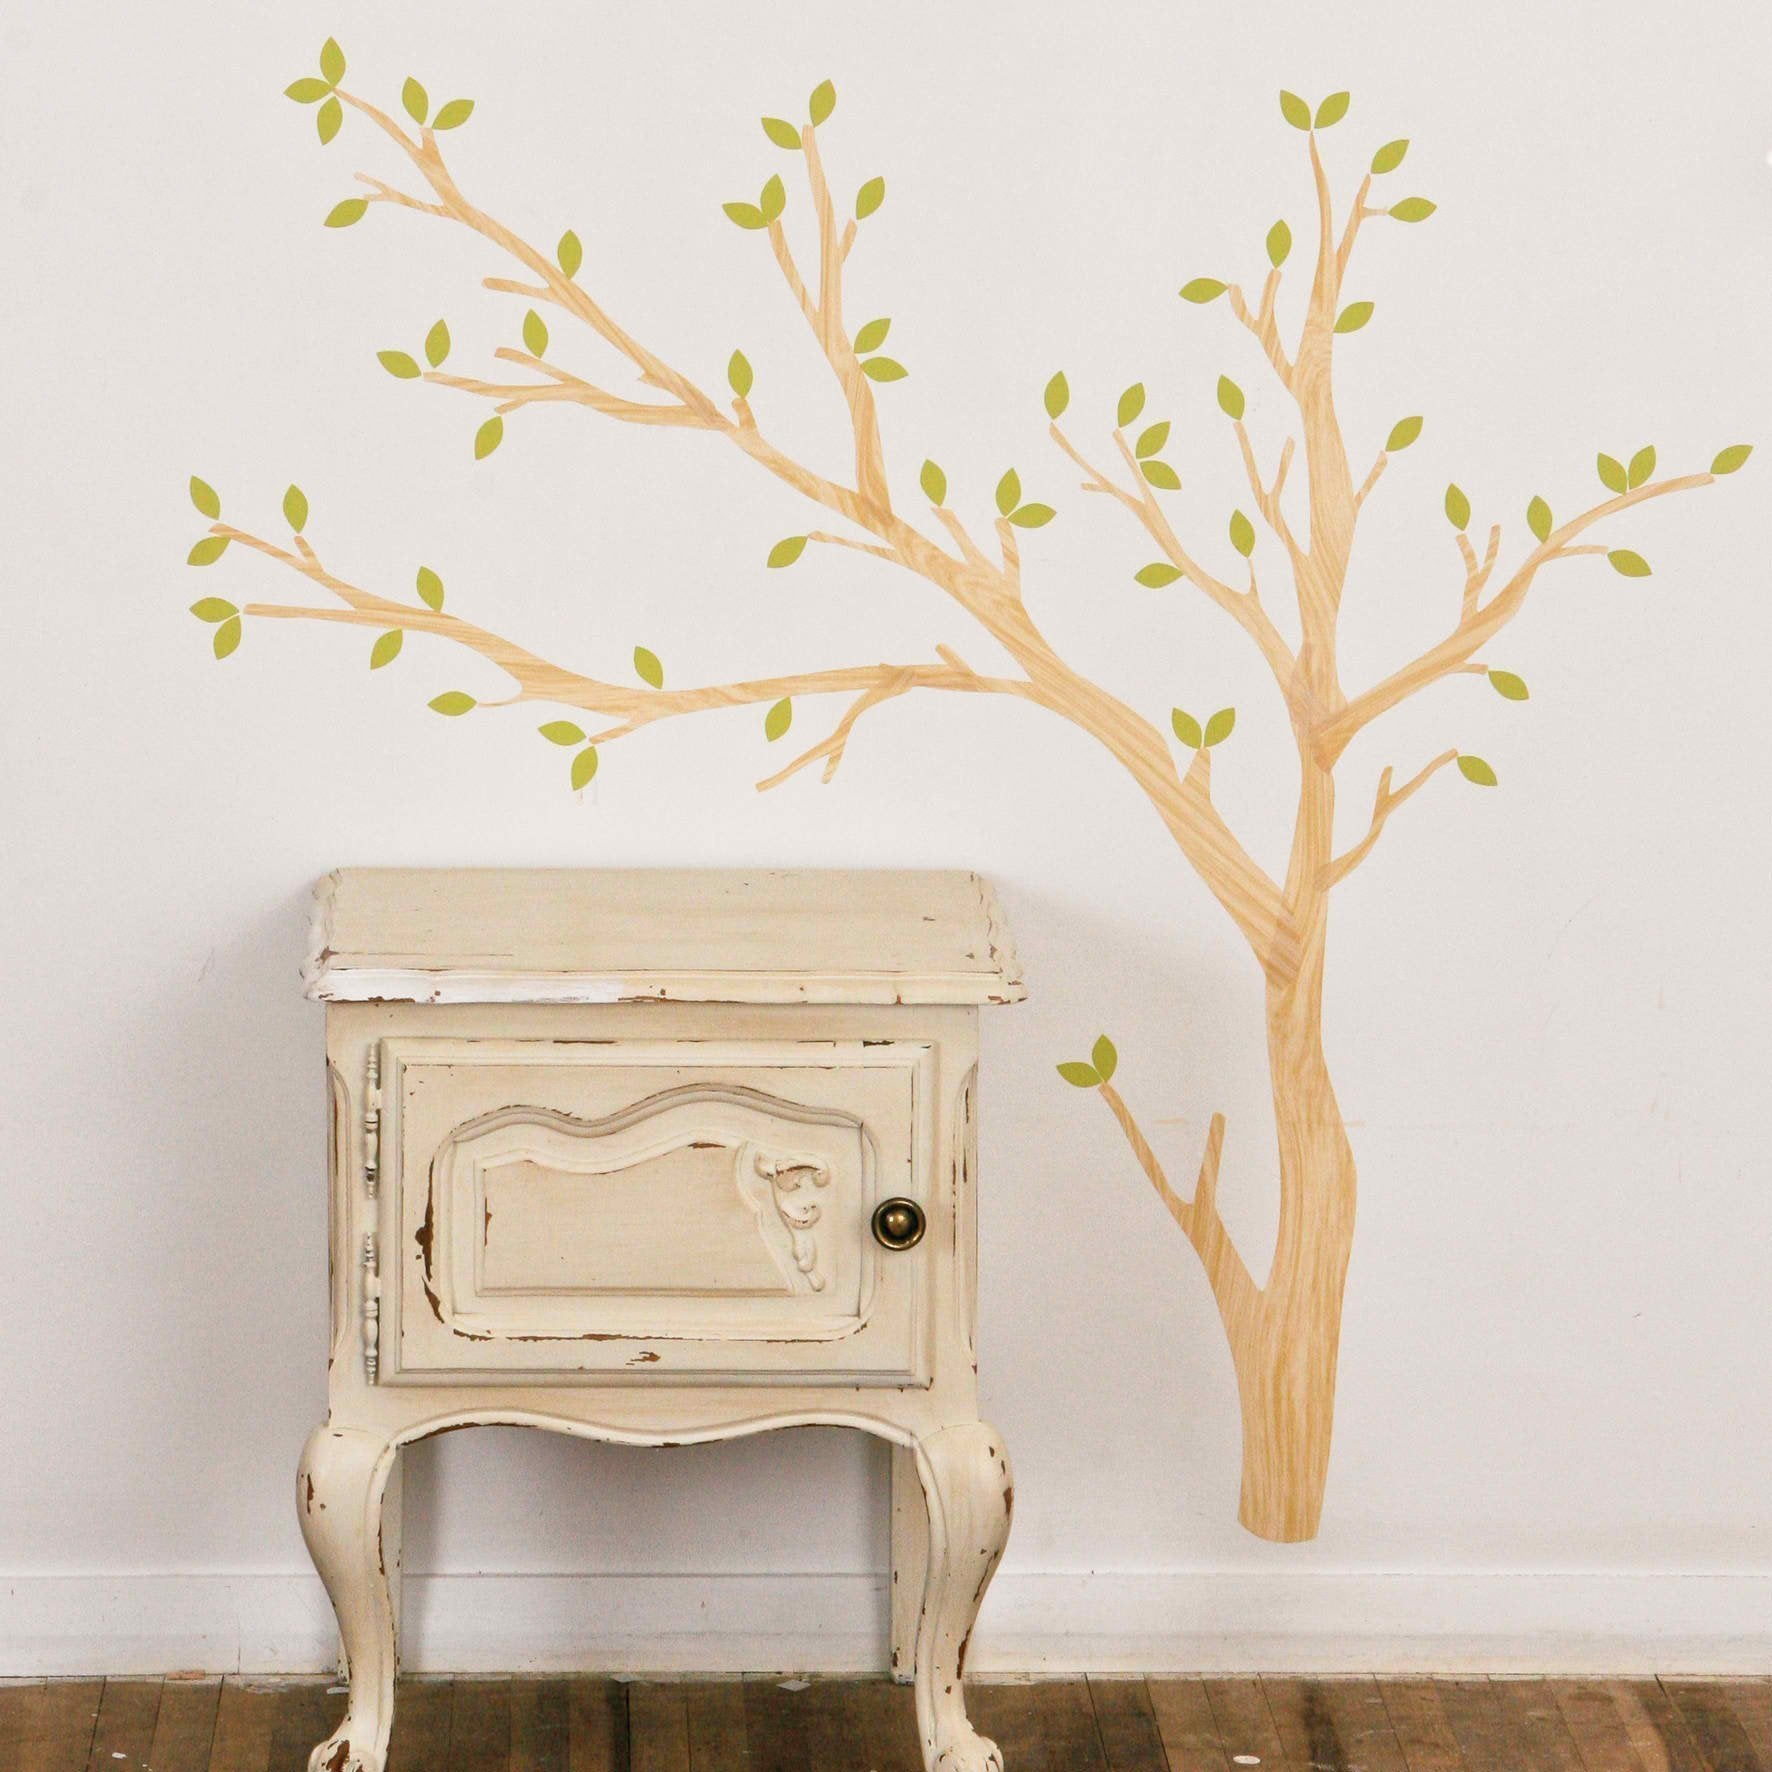 Build A Tree Light Decals - Love Mae - Hugs For Kids